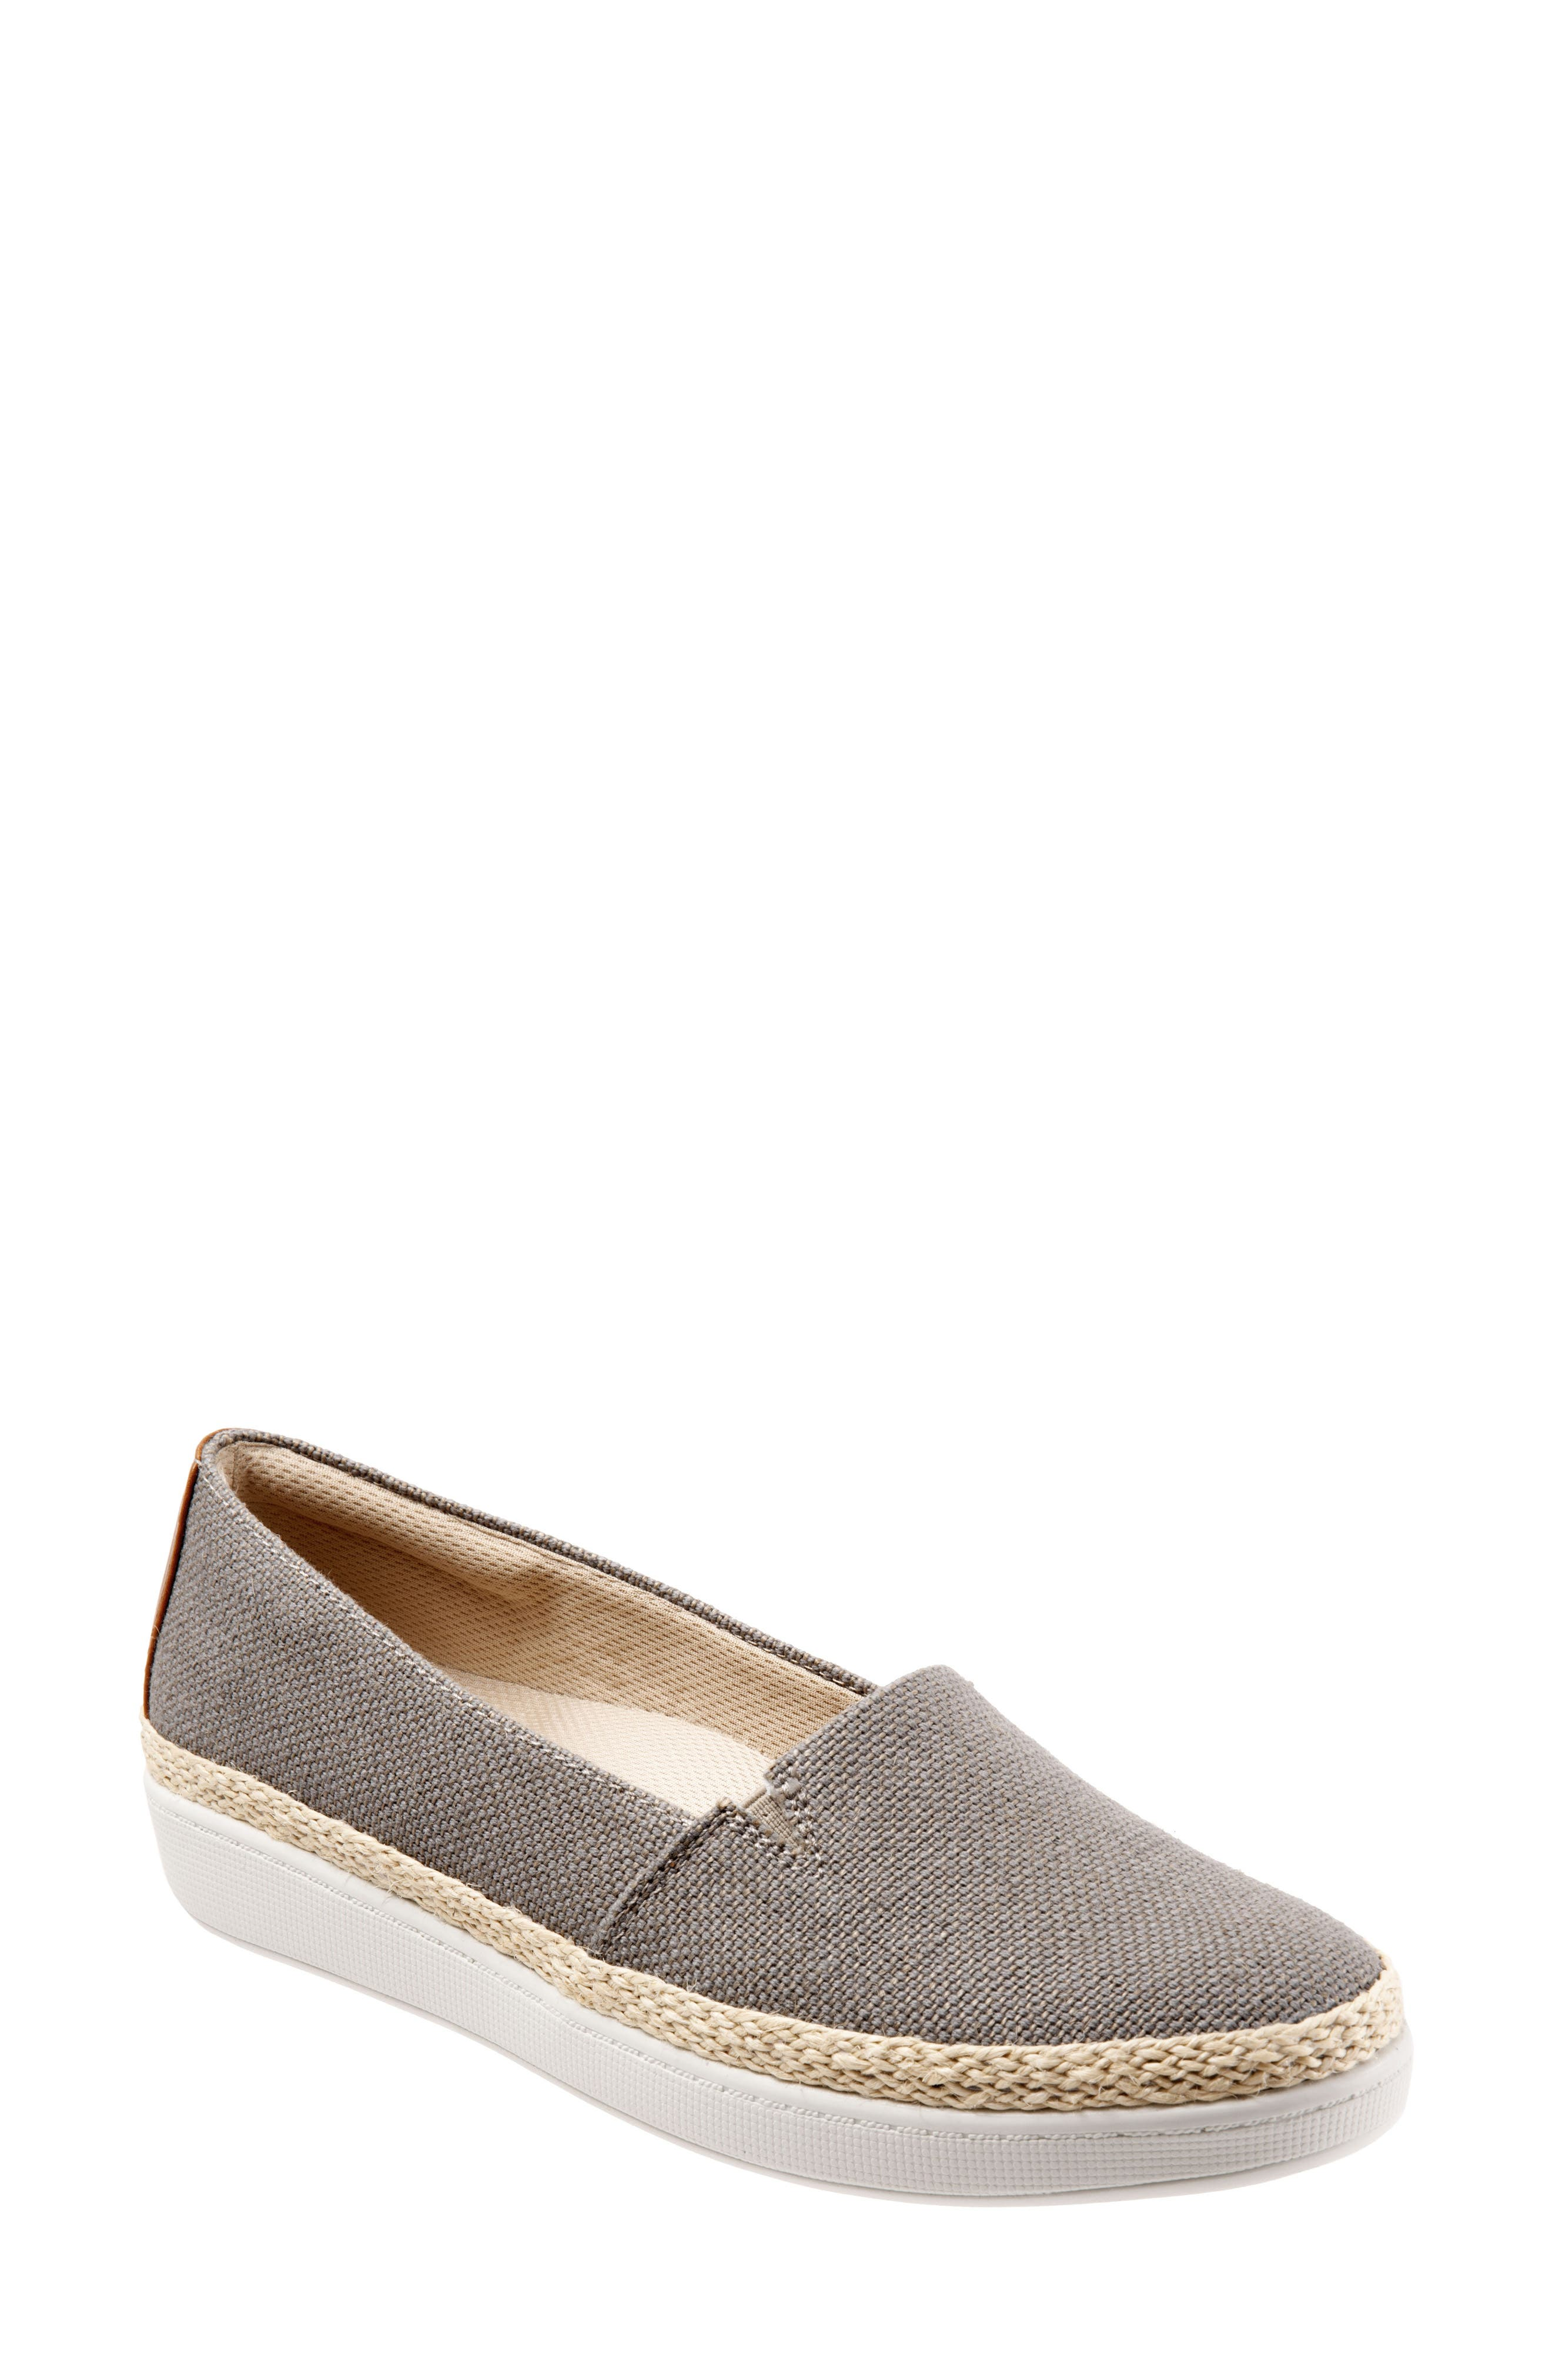 Trotters Accent Slip-On WW - Beige